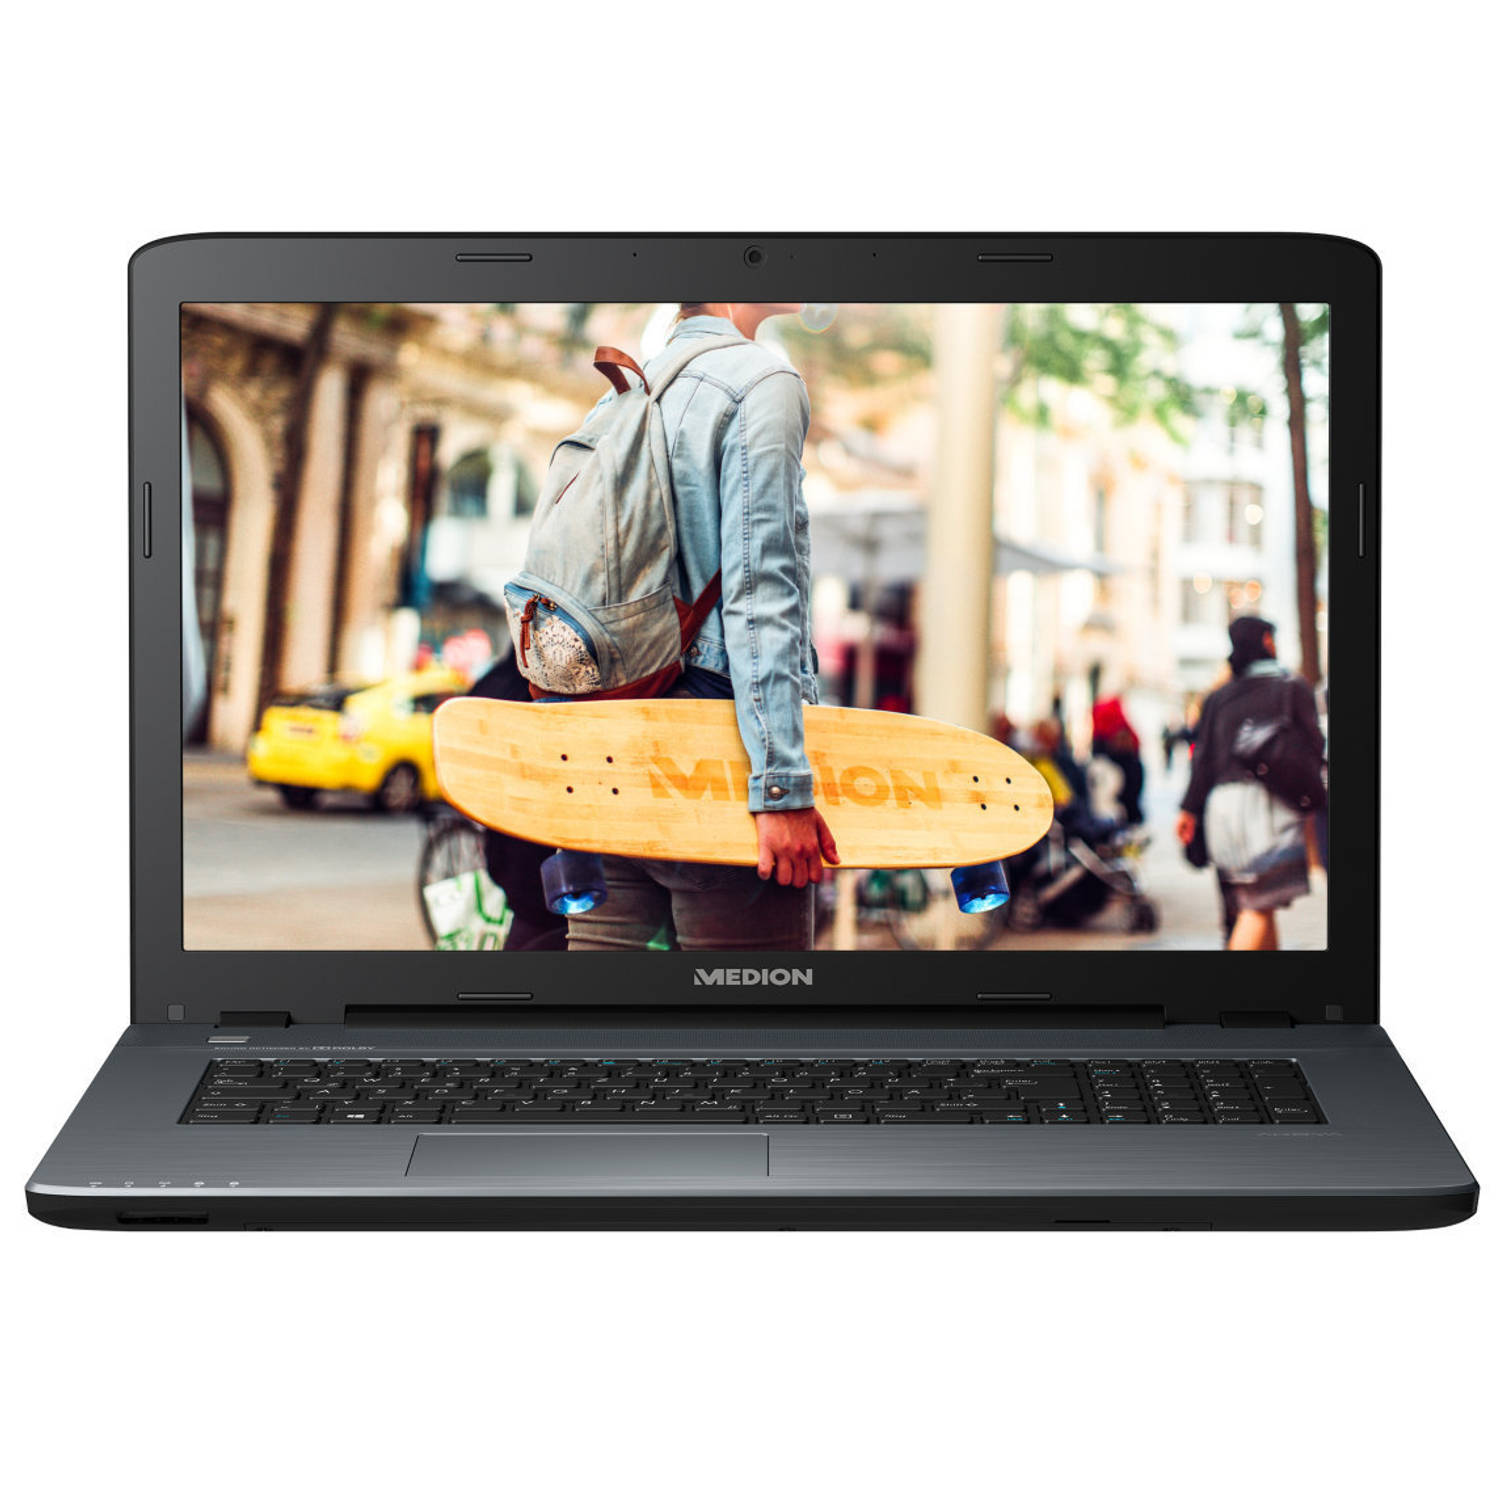 MEDION AKOYA P7653-i5-256F8 Antraciet Notebook 43,9 cm (17.3 ) 1920 x 1080 Pixels 1,60 GHz Intel® 8